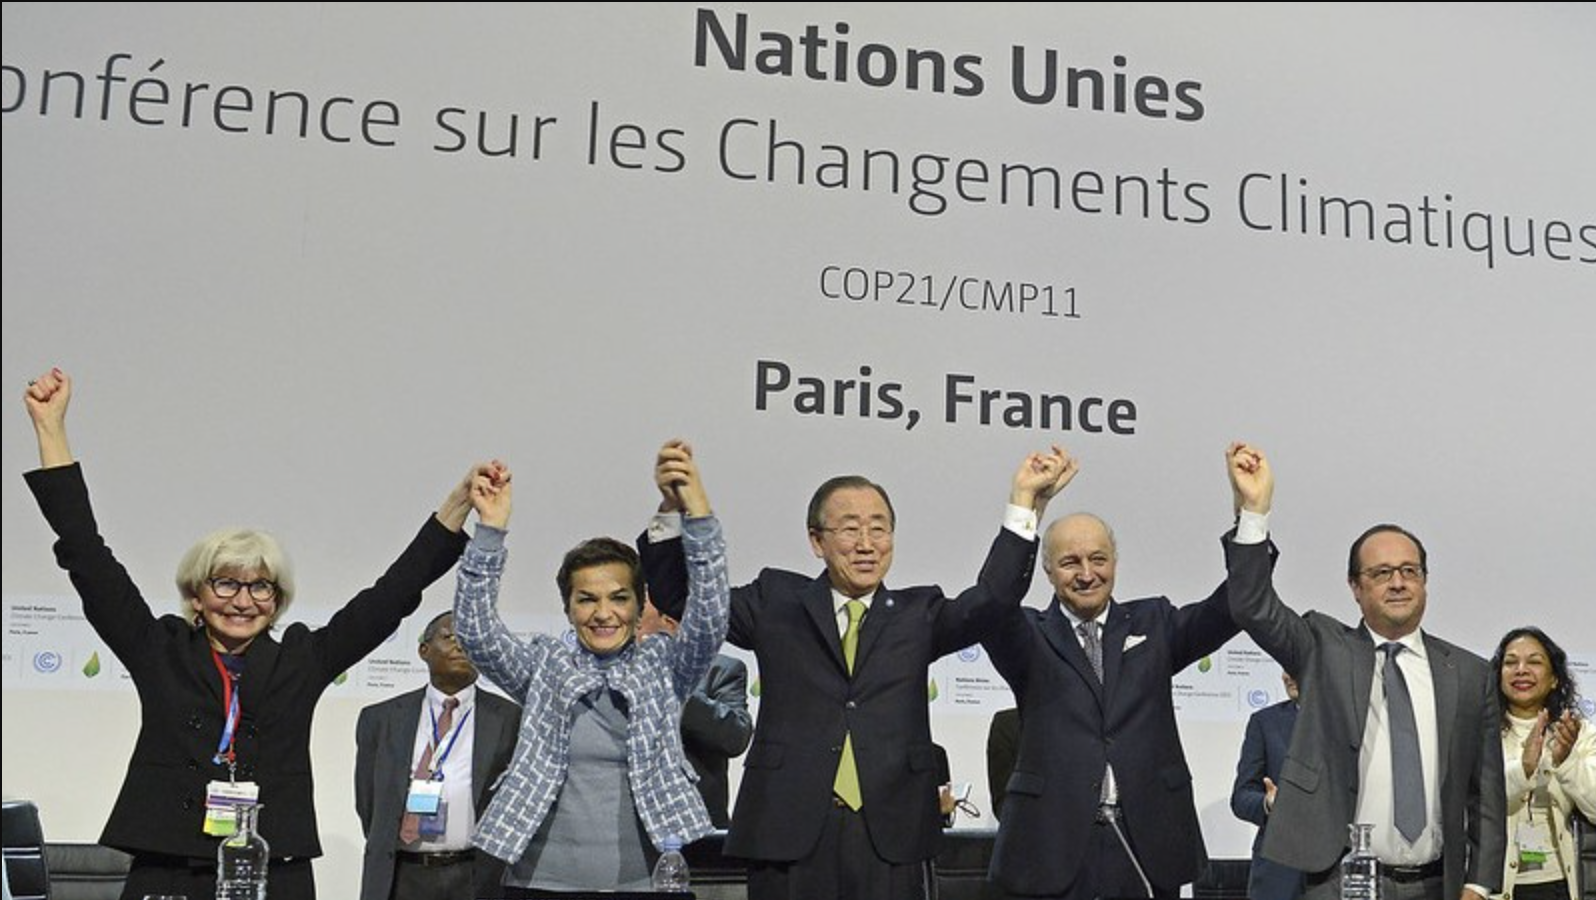 Image from COP21/CMP11